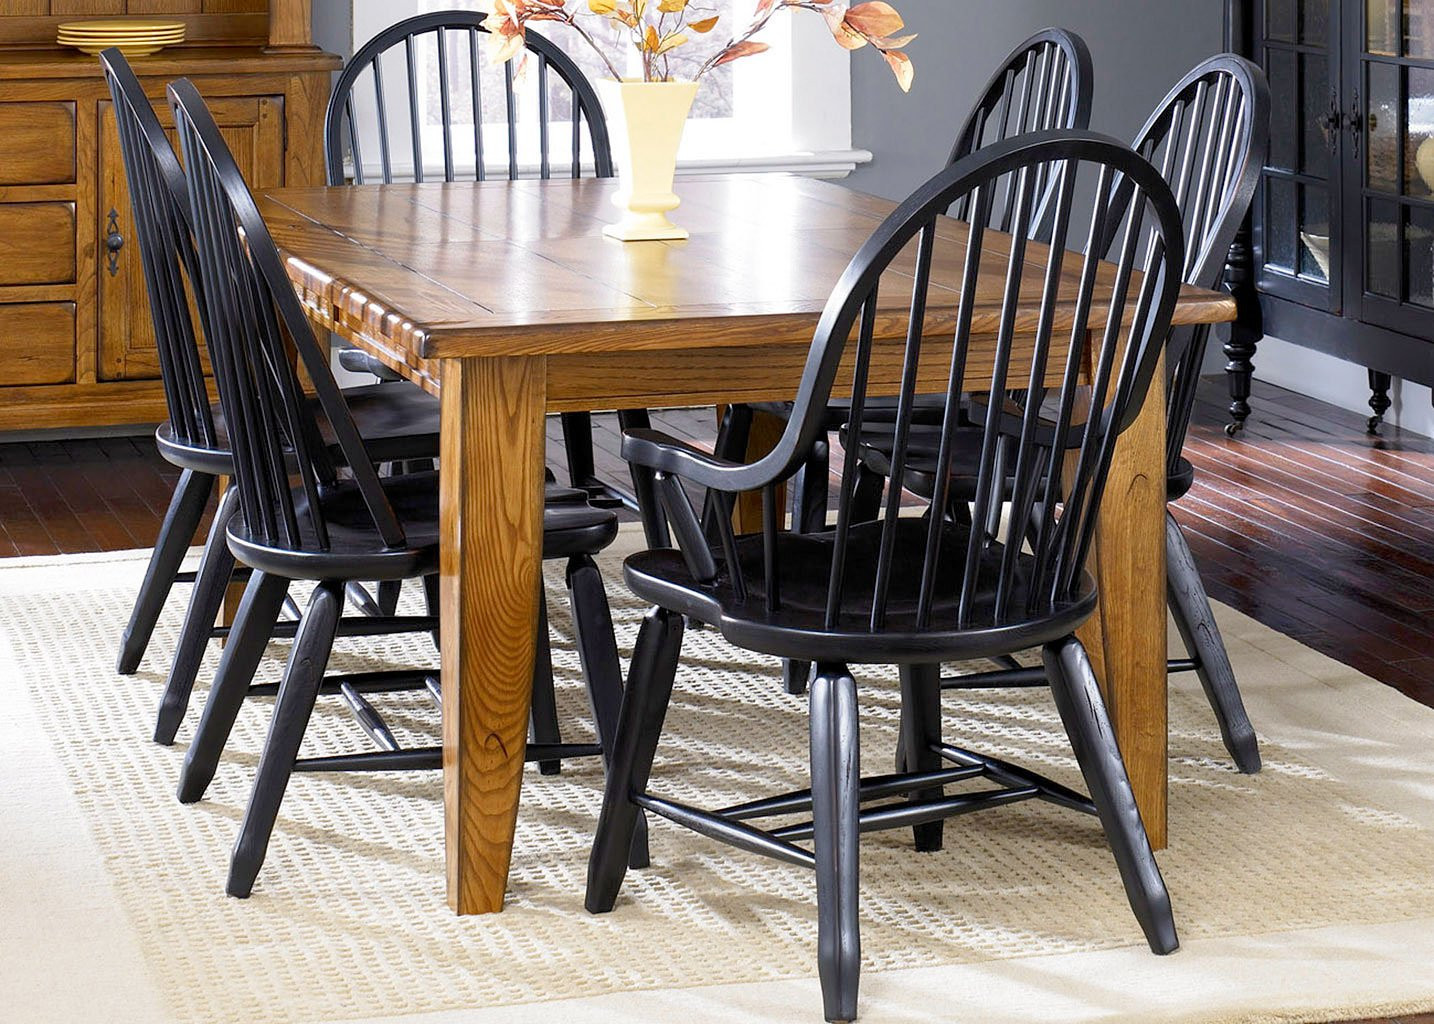 Best ideas about Black Dining Room Chairs . Save or Pin Treasures Dining Room Set W Black Chairs Liberty Now.